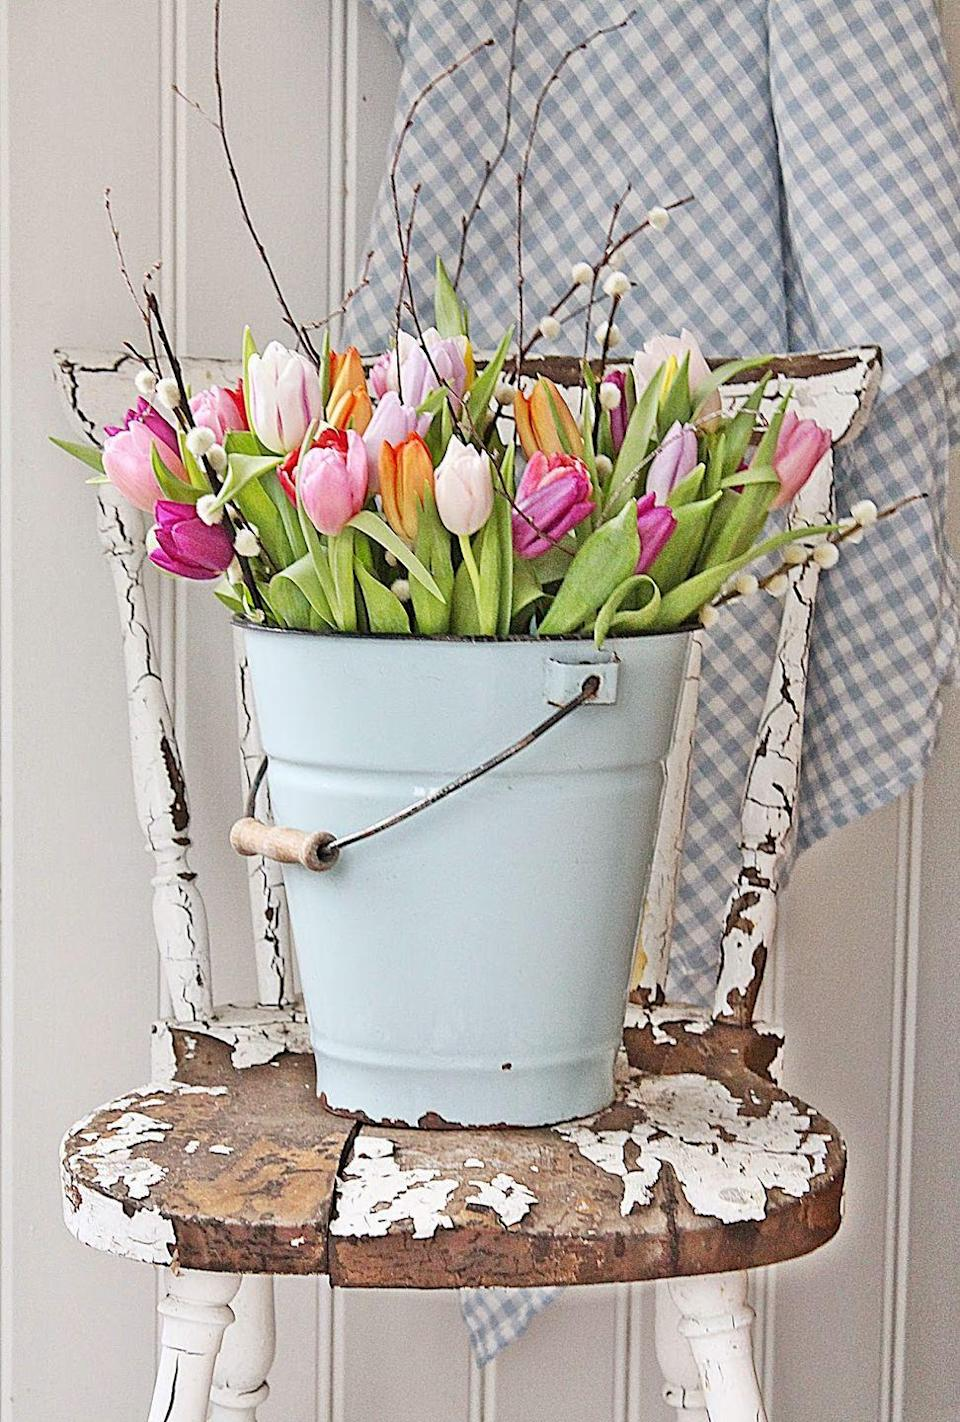 """<p>Arrange multi-colored tulips in unexpected containers, like metal pails, for the ultimate spring vibe. <br><br><em><a href=""""http://vibekedesign.blogspot.nl/2015/02/fargefest.html"""" rel=""""nofollow noopener"""" target=""""_blank"""" data-ylk=""""slk:Get the tutorial from Vibeke Design »"""" class=""""link rapid-noclick-resp"""">Get the tutorial from Vibeke Design »</a></em> </p>"""